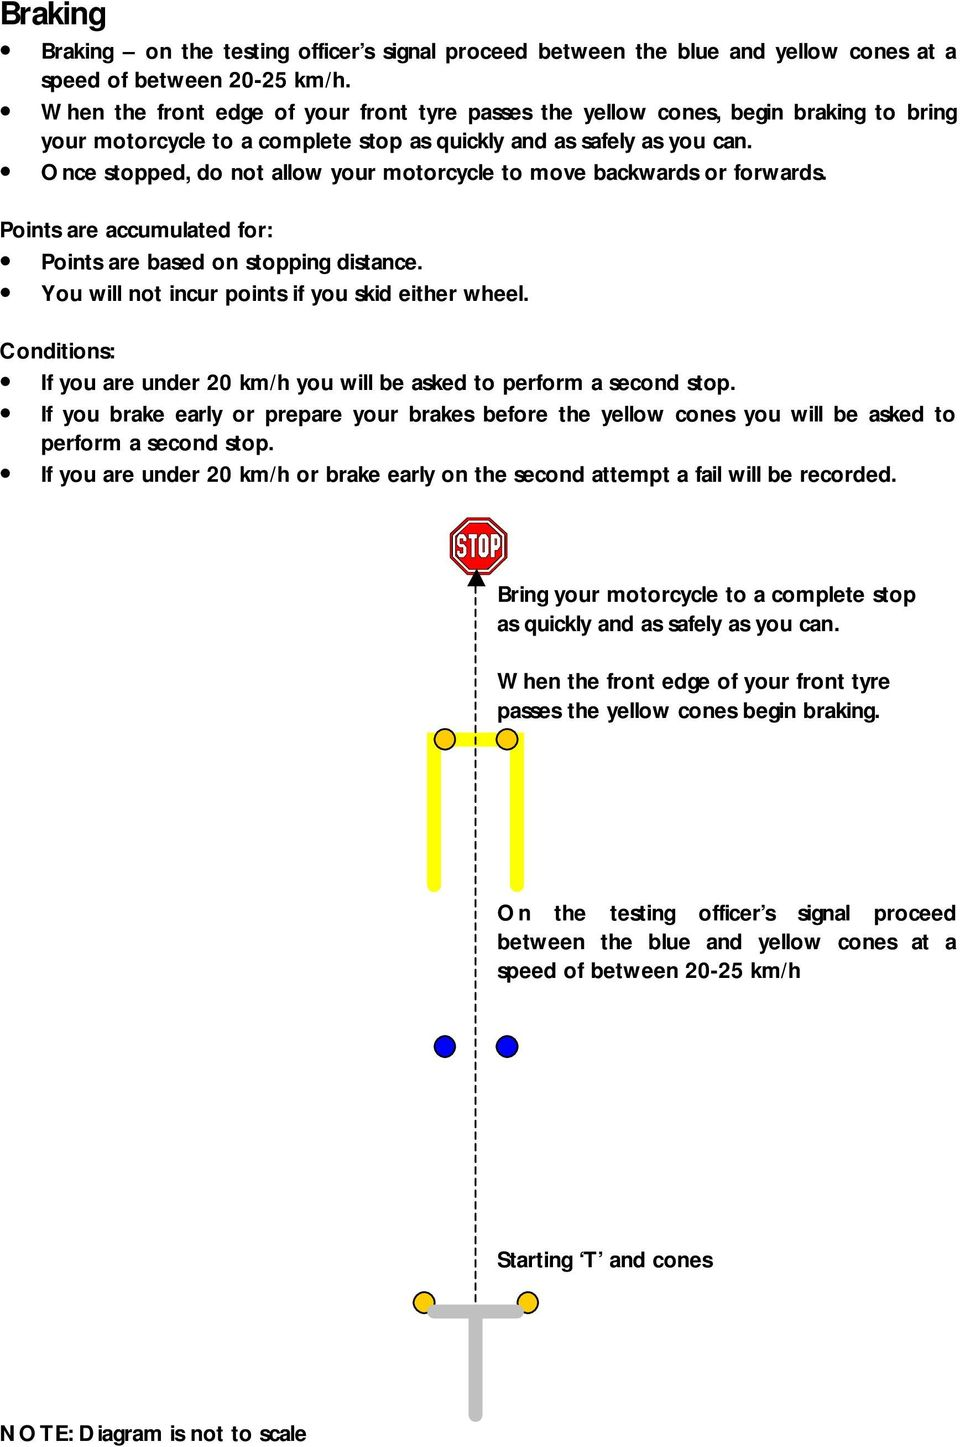 Once stopped, do not allow your motorcycle to move backwards or forwards. Points are based on stopping distance. You will not incur points if you skid either wheel.